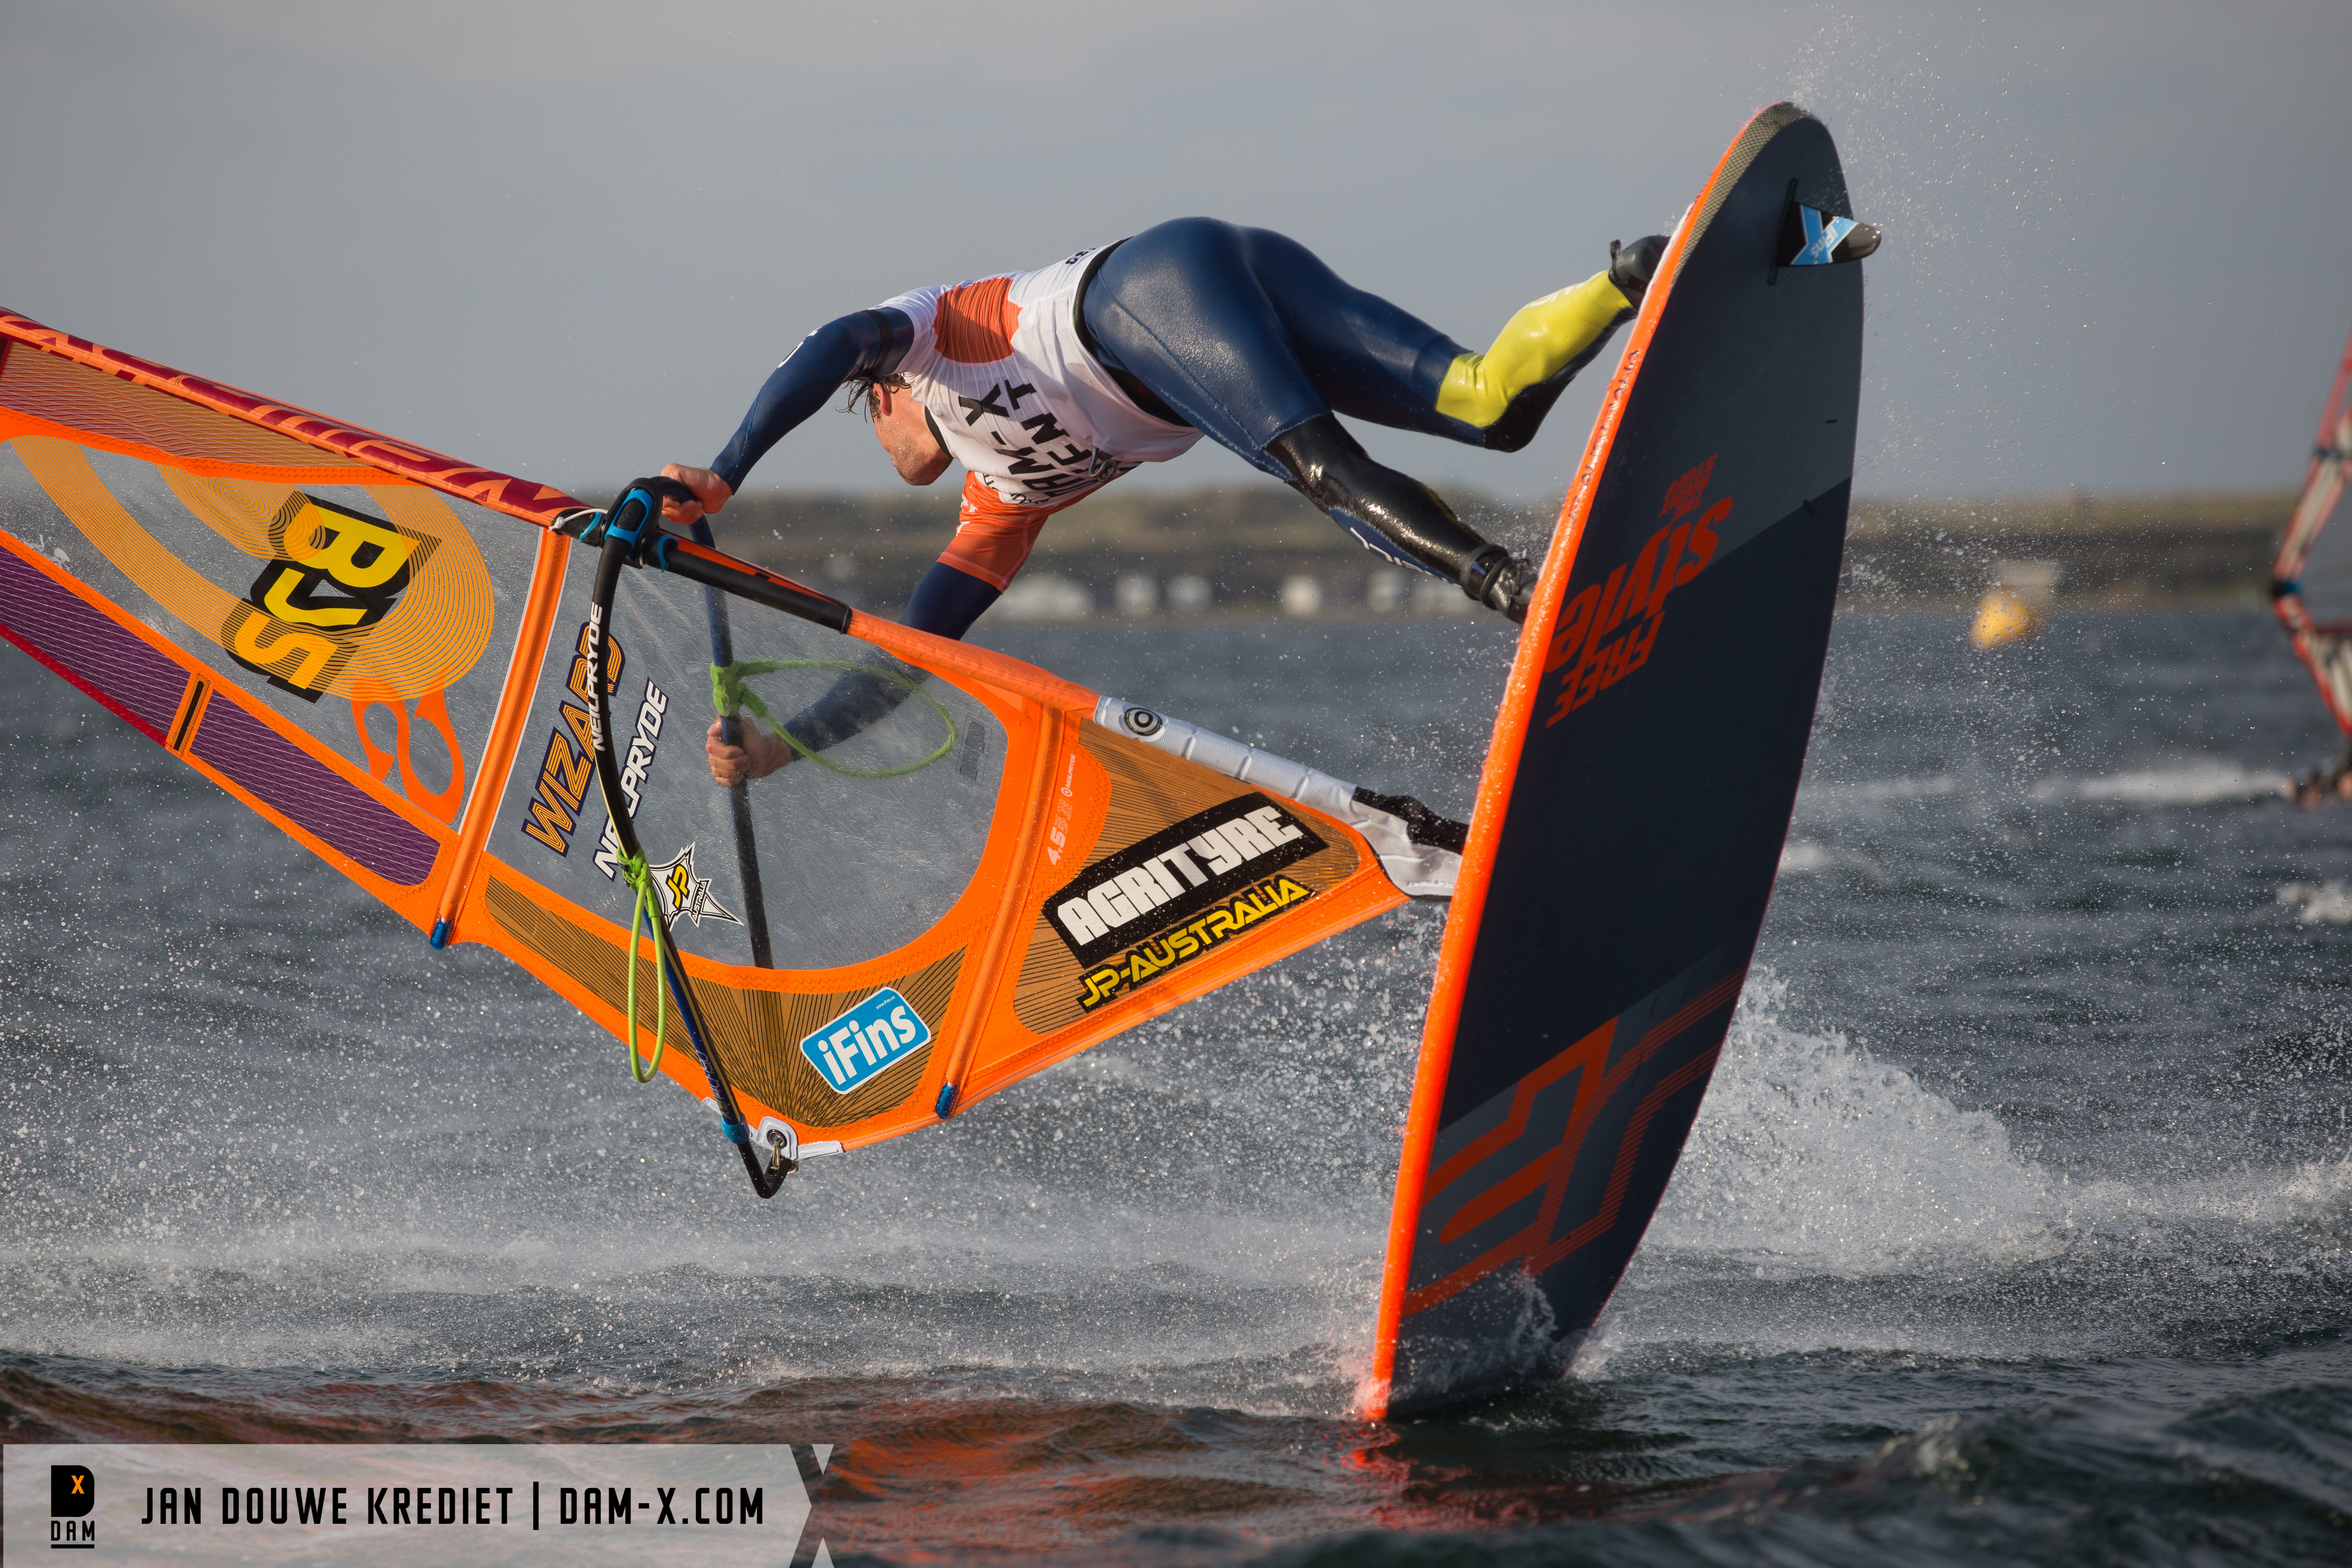 Steven Van Broeckhoven on top of his game again at DAM-X